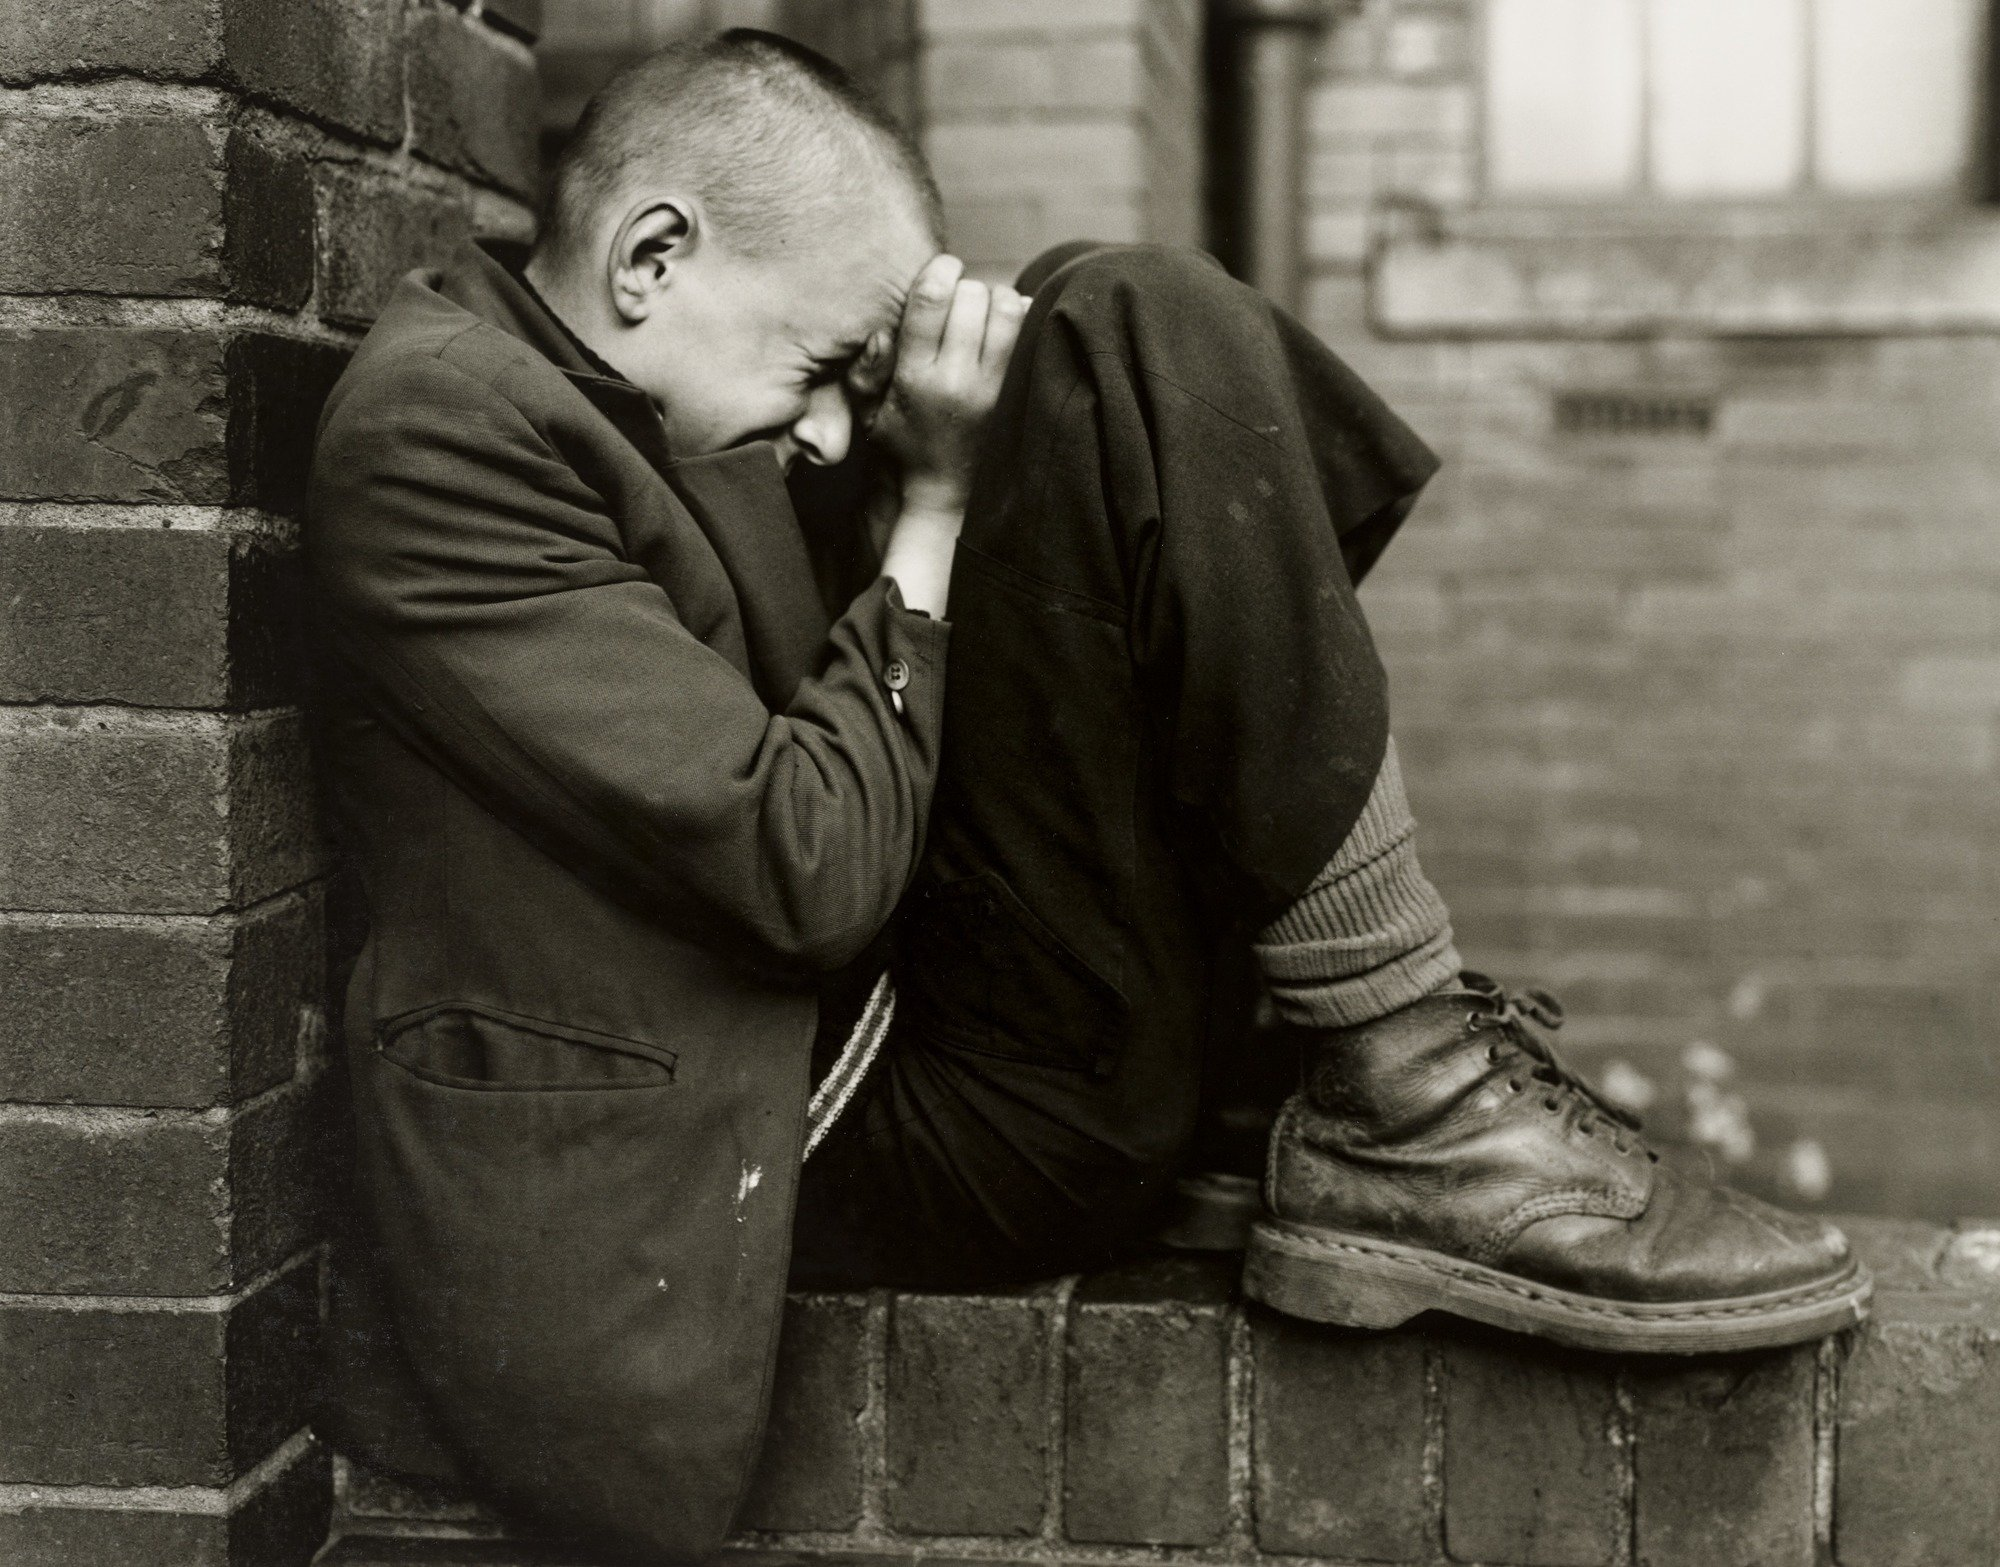 Youth on wall, Jarrow, Tyneside, Reino Unido, 1976 por Chris Killip - Fotografía y soledad